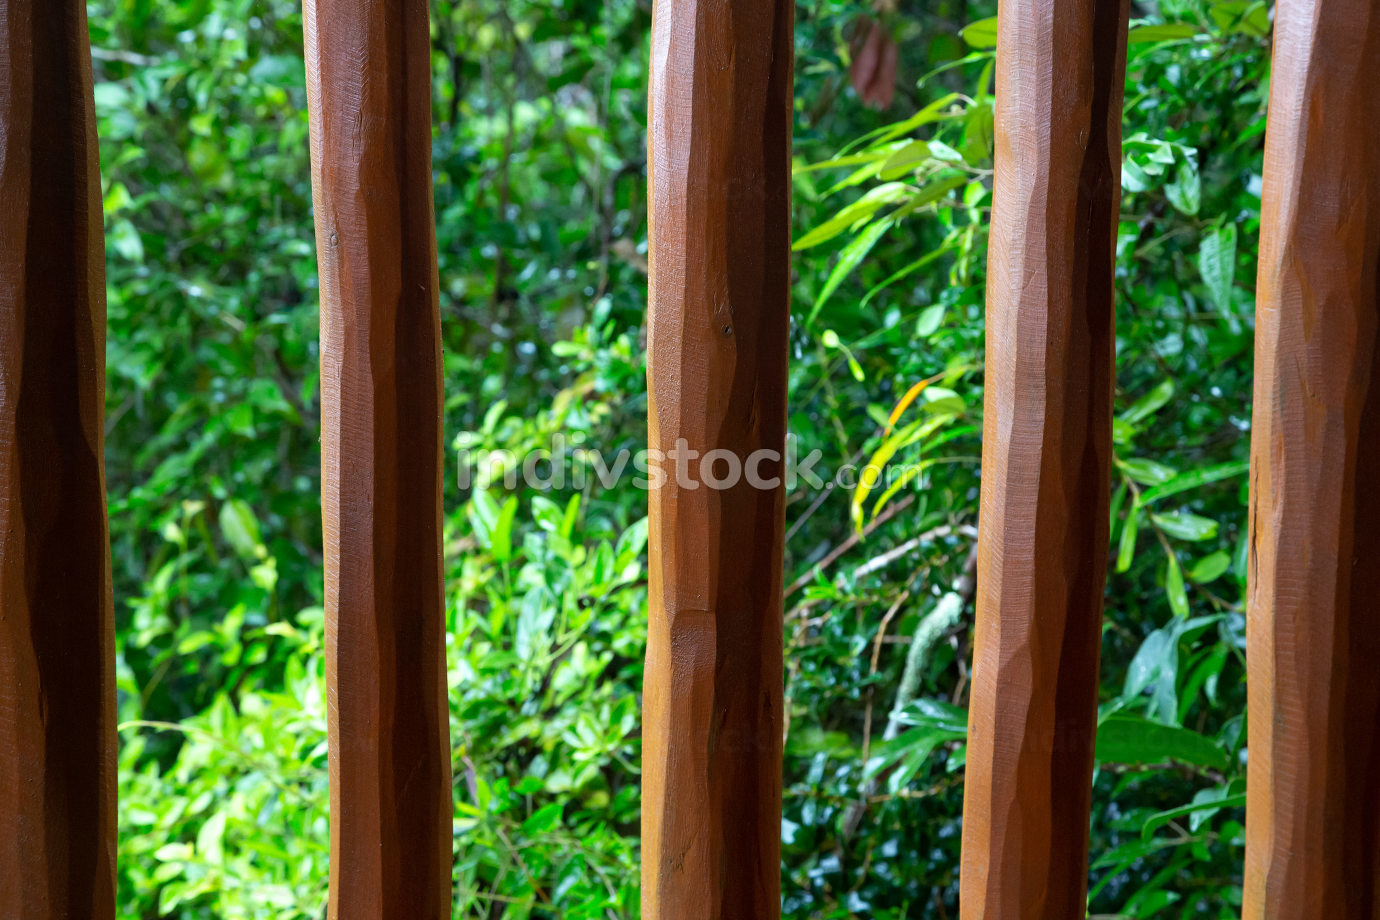 Background from a wooden mesh or wood